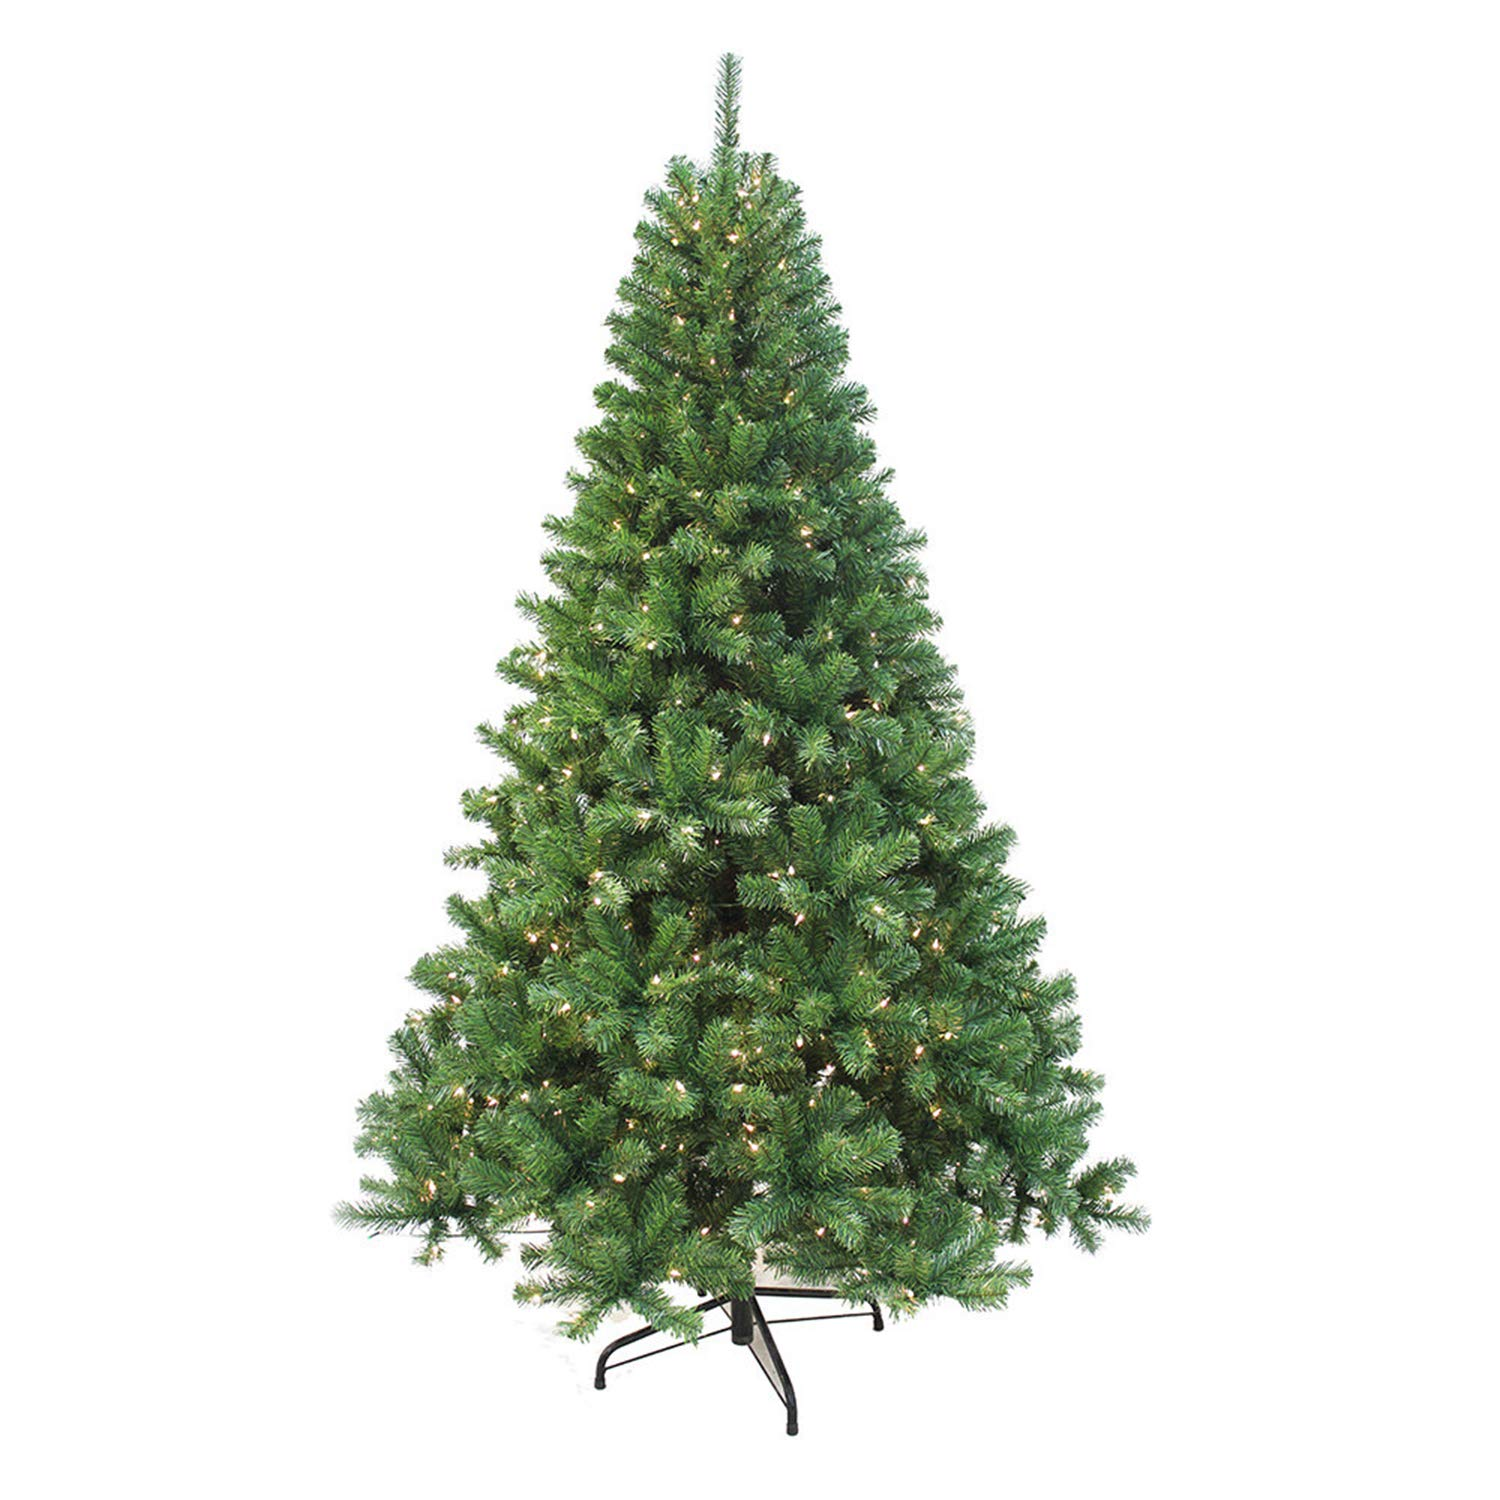 Puleo International Puleo Co 7.5-Foot Pre-lit Augusta Pine Tree Christmas Décor Green